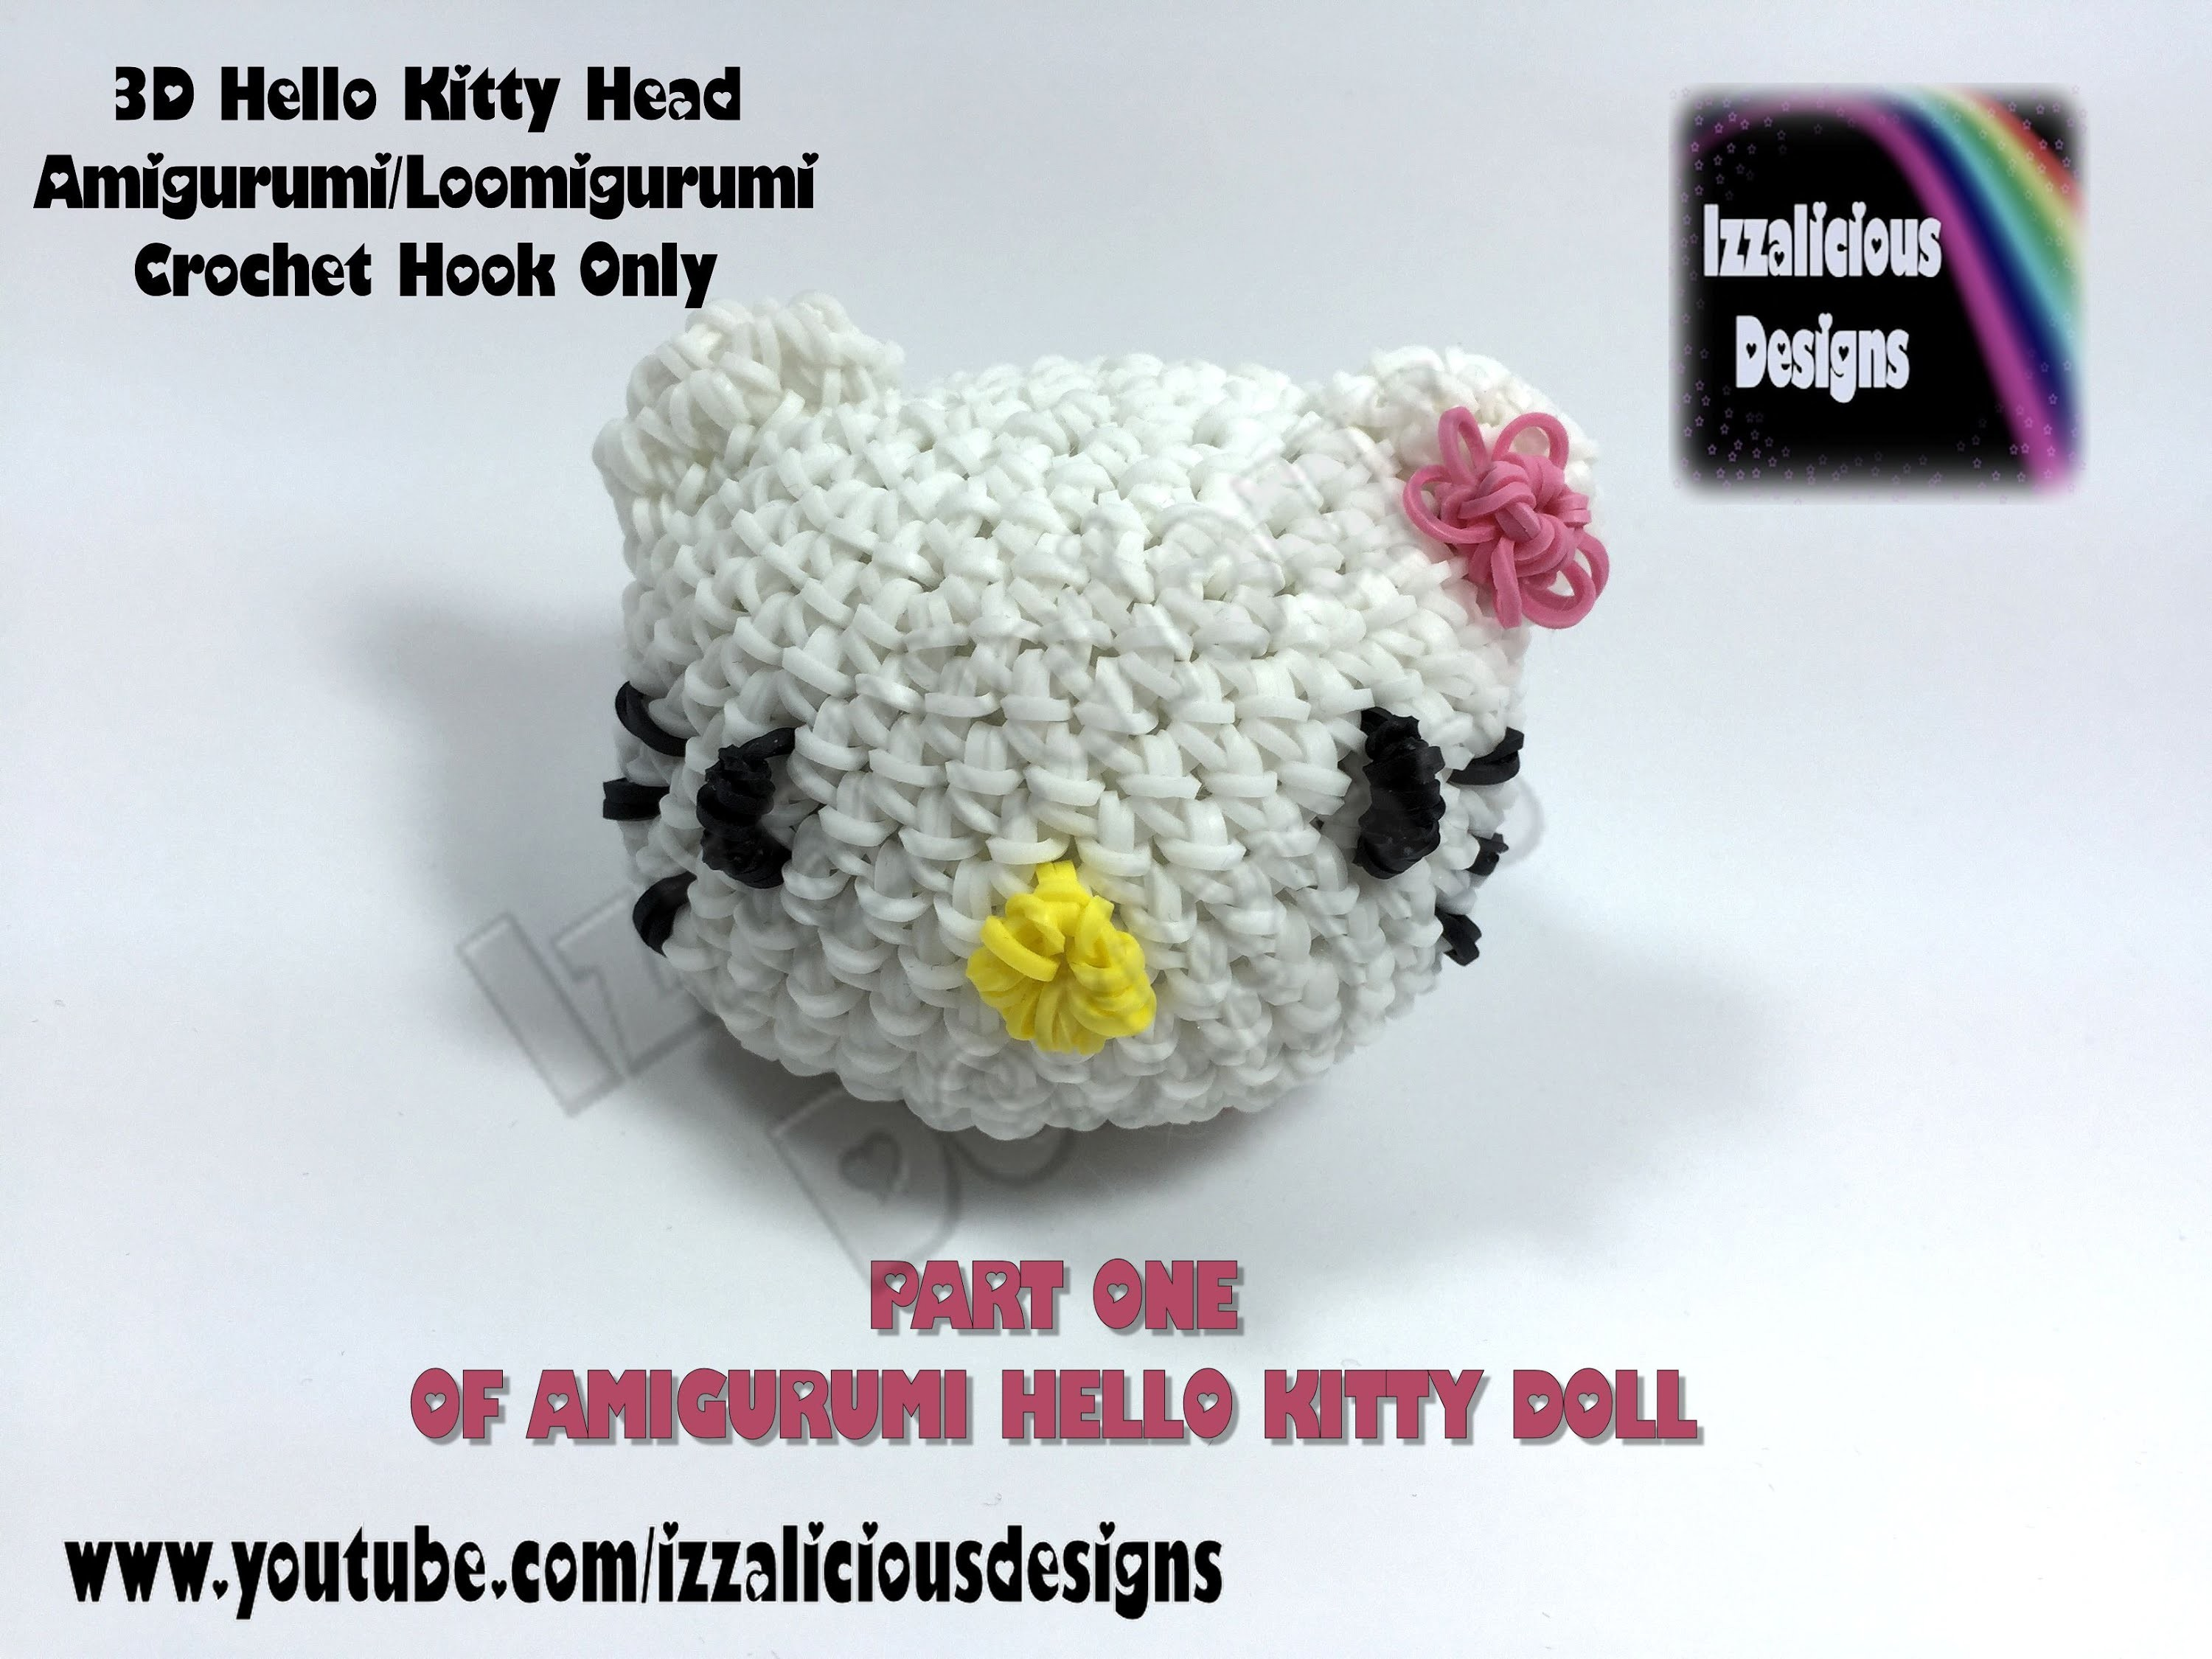 Rainbow Loom 3D Hello Kitty Amigurumi.Loomigurumi  Head - PART ONE - Hook Only Loomless (loom-less)